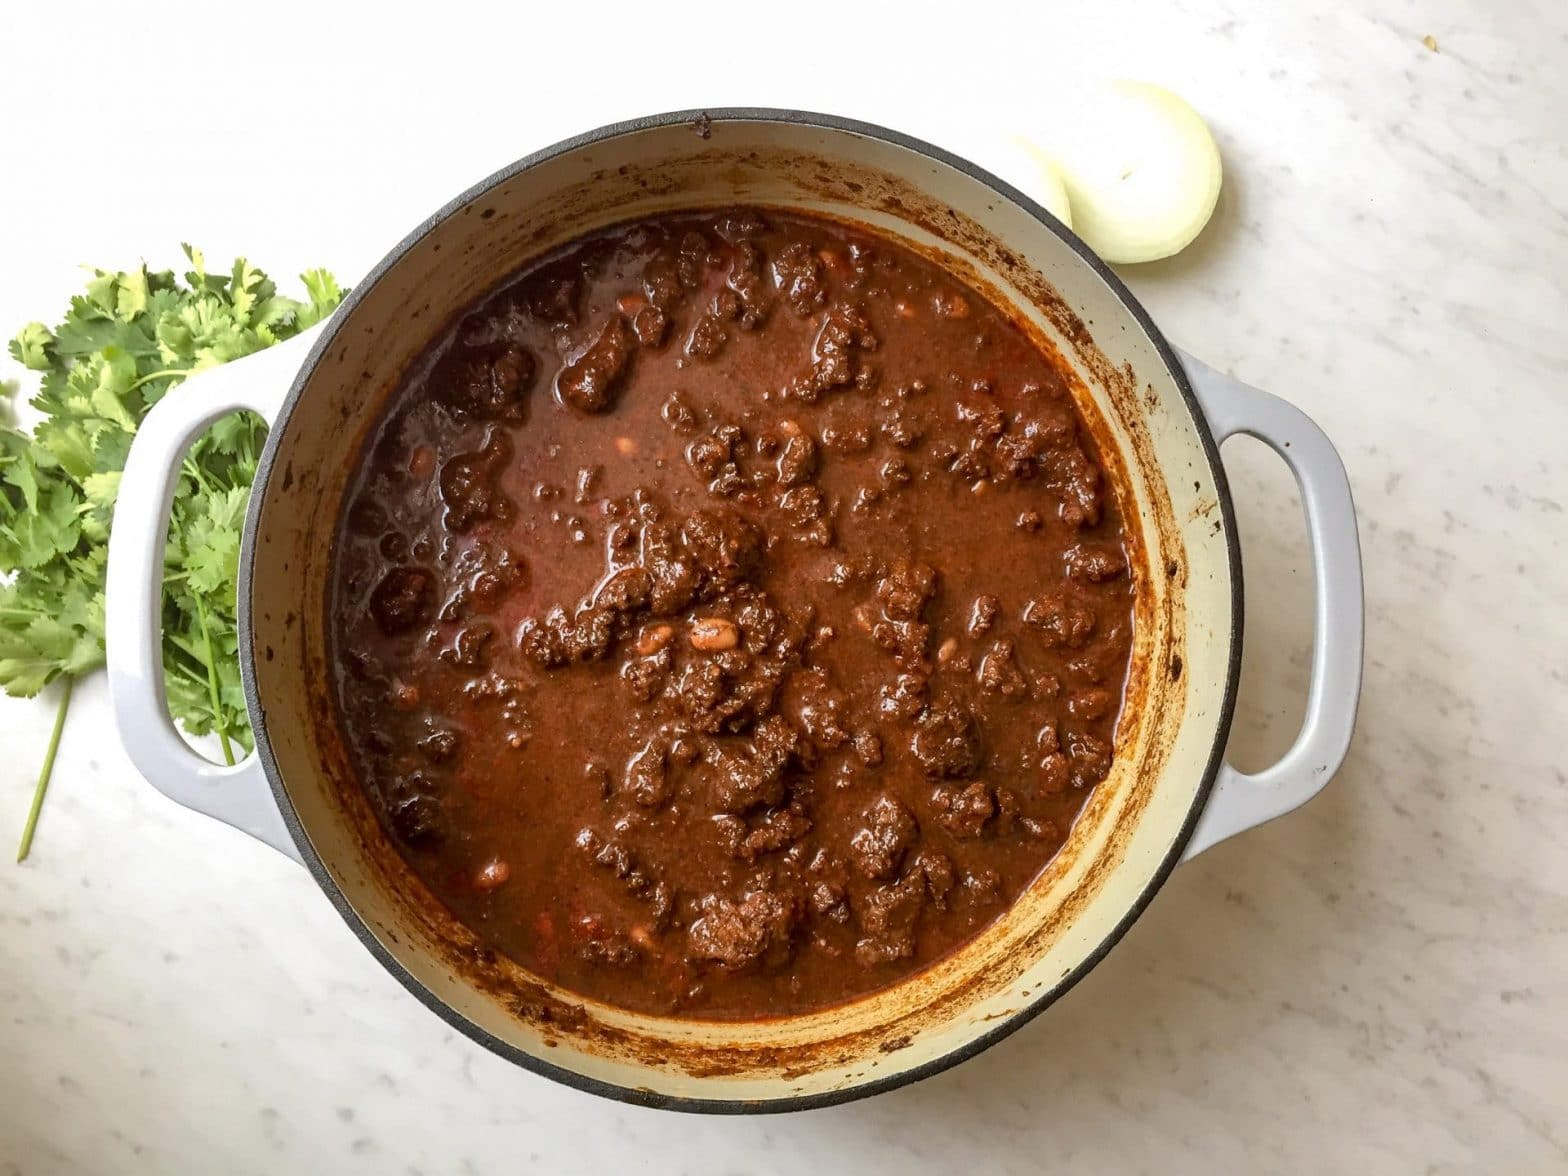 America's Test Kitchen Food Processor Perfection Cookbook Review + Exclusive Home Ground Beef Chili Recipe!